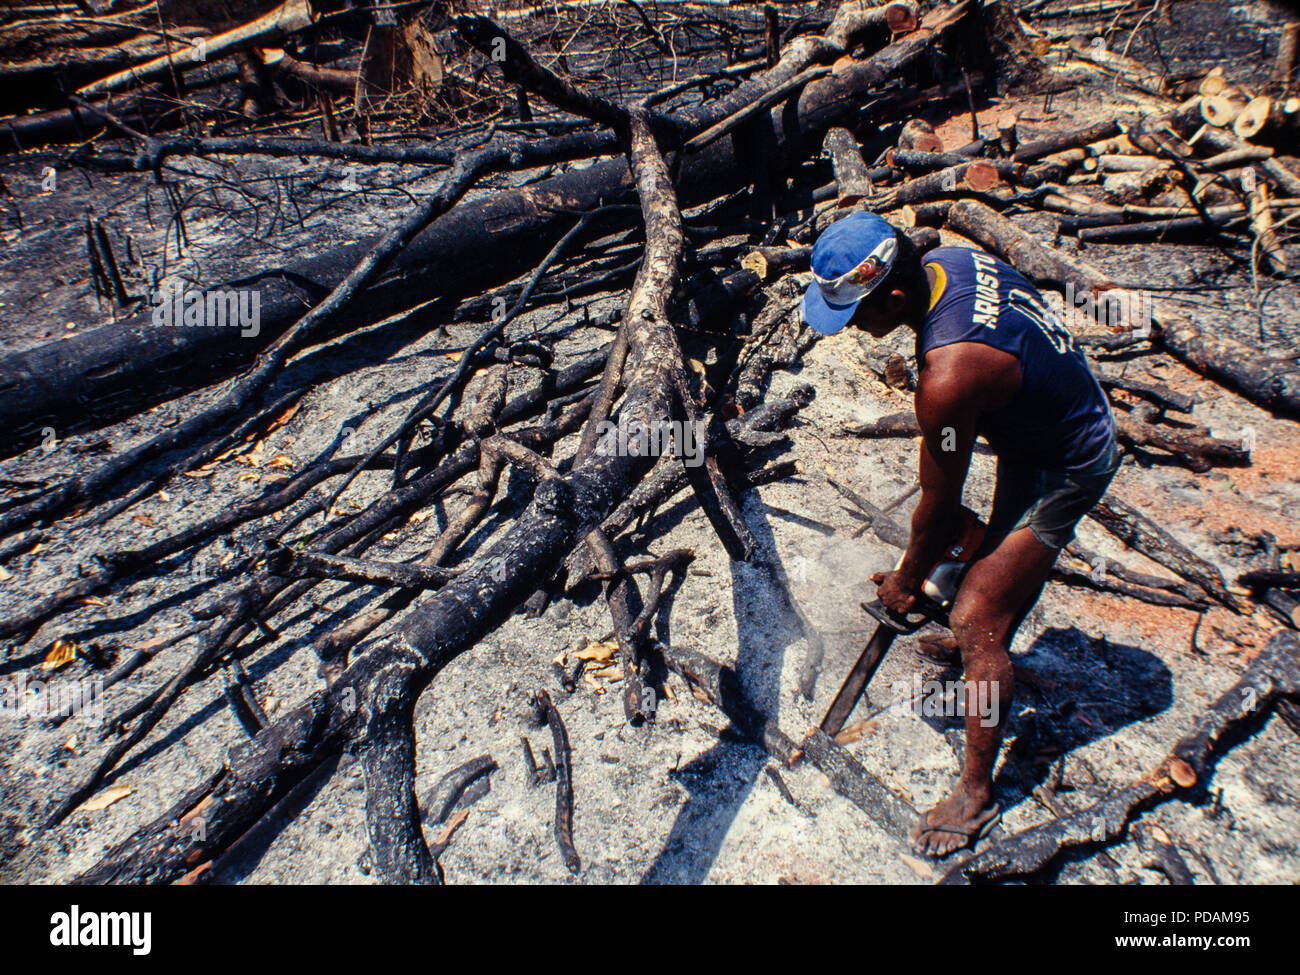 Logging, Amazon rainforest clearance, workers cut down trees using chainsaw in a slashed-and-burned patch of forest. Acre State, Brazil. - Stock Image